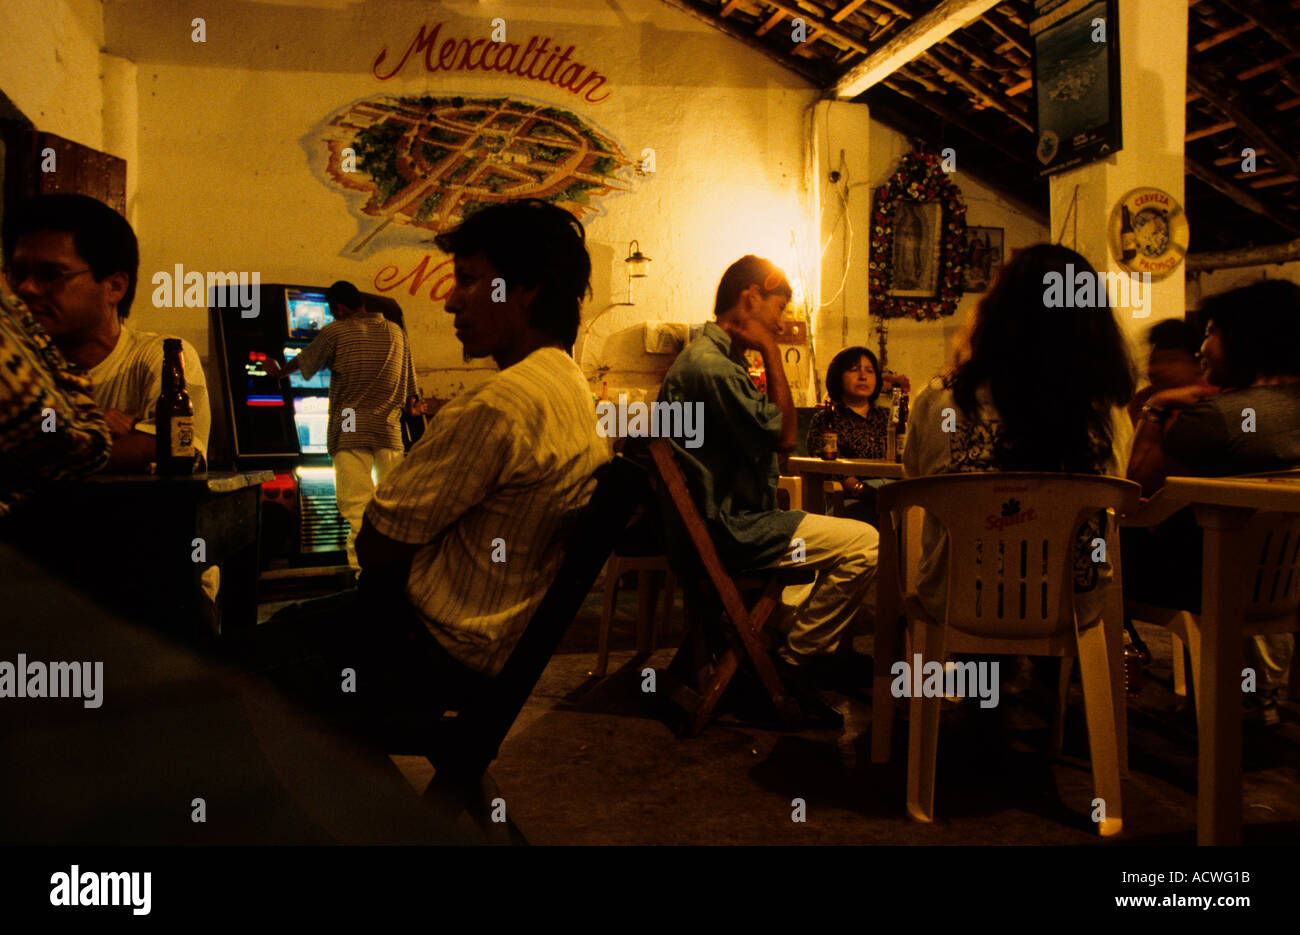 Mexico Nayarit Mexcaltitan Restaurant - Stock Image